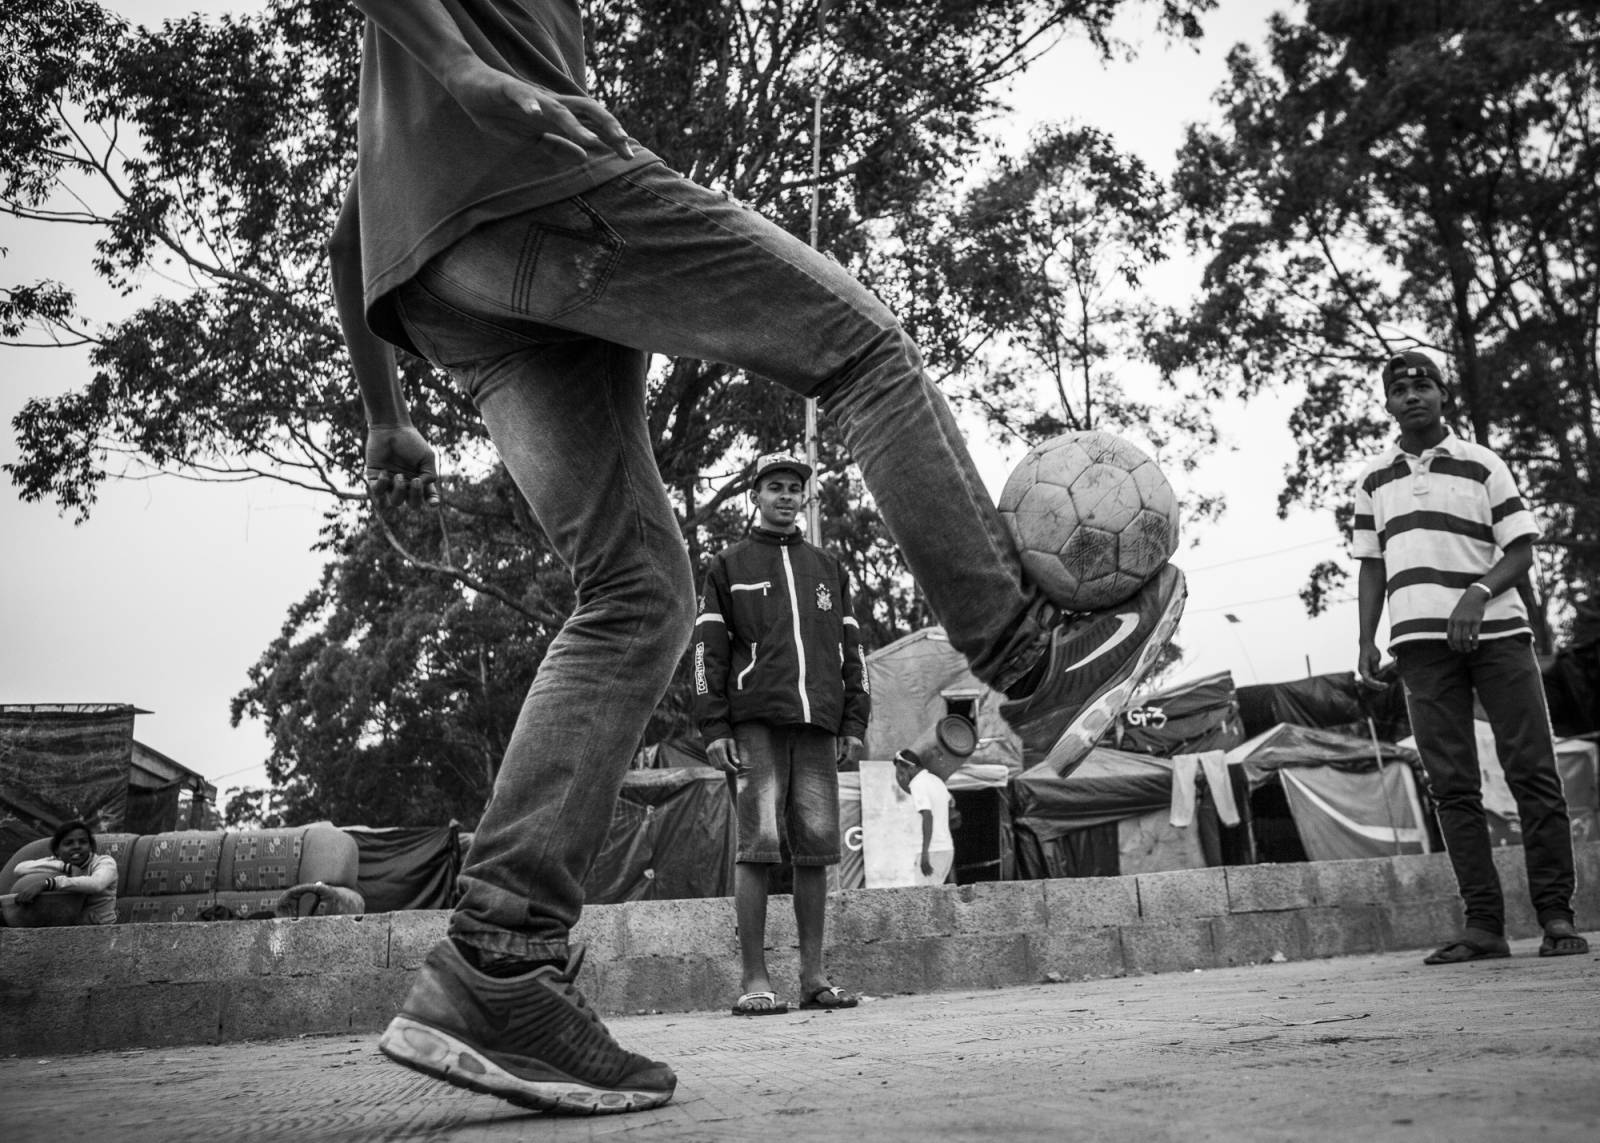 Ceará Machado plays football with his friends in front of the Copa do Povo (People's Cup) Camp in Itaquera, São Paulo. Even if the World Cup is the main reason to be without a roof he still loves the game and will suppport Brazil to lift the cup. The Copa do Povo Camp, is just a few miles from the Arena Corinthians and has 5,000 homeless workers and their families occupied area of fifteen acres. They are homeless after rents skyrocketed because of the World Cup.